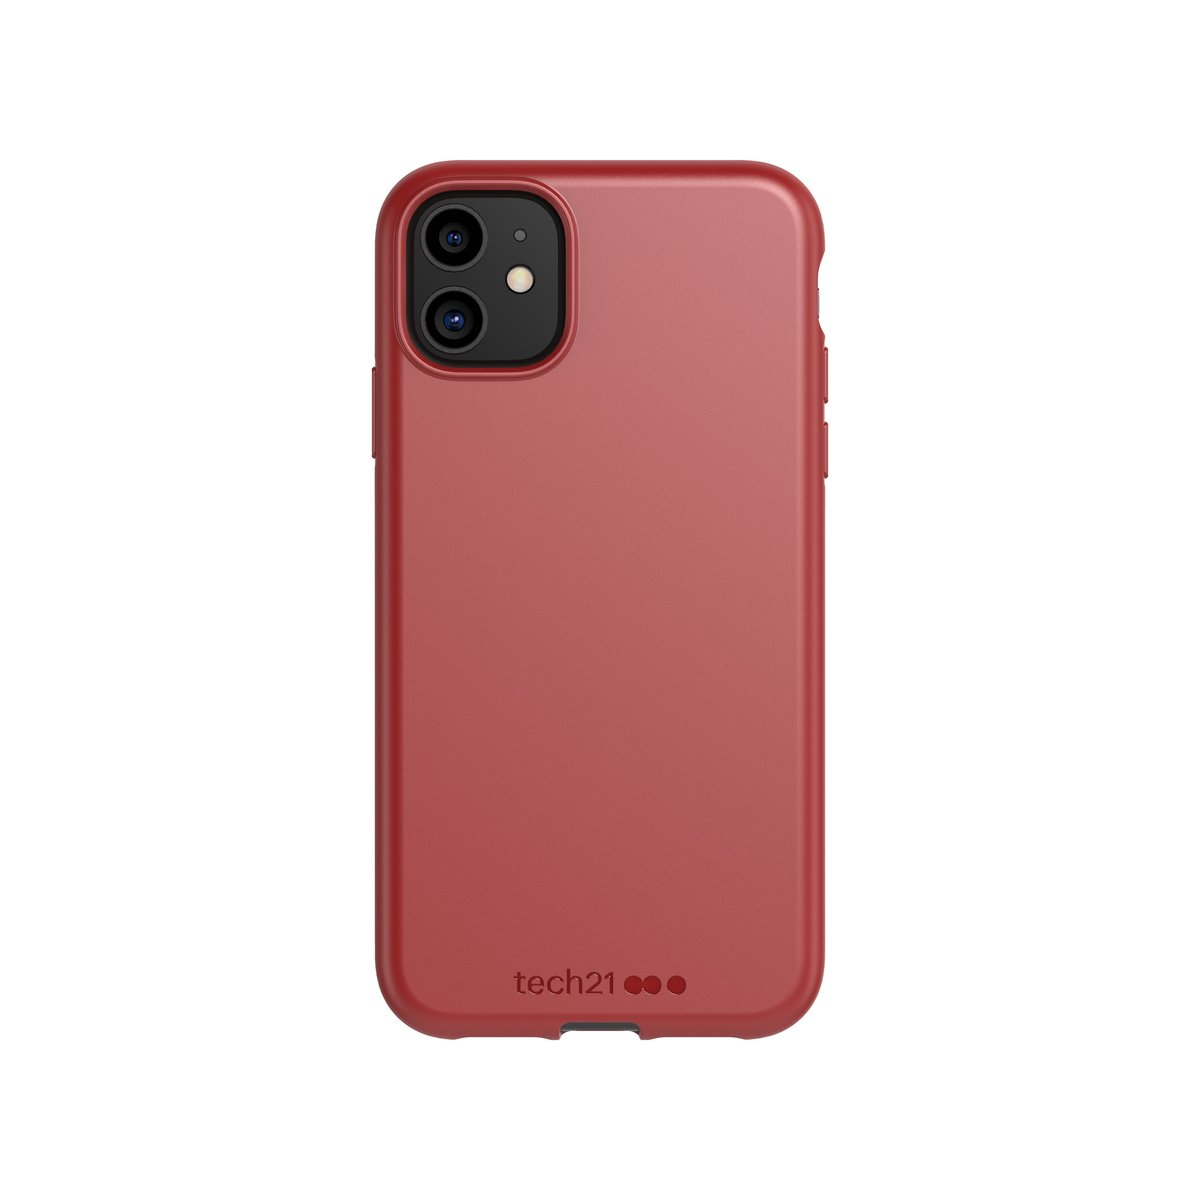 Studio Colour for iPhone 11 Pro Max - Terra Red